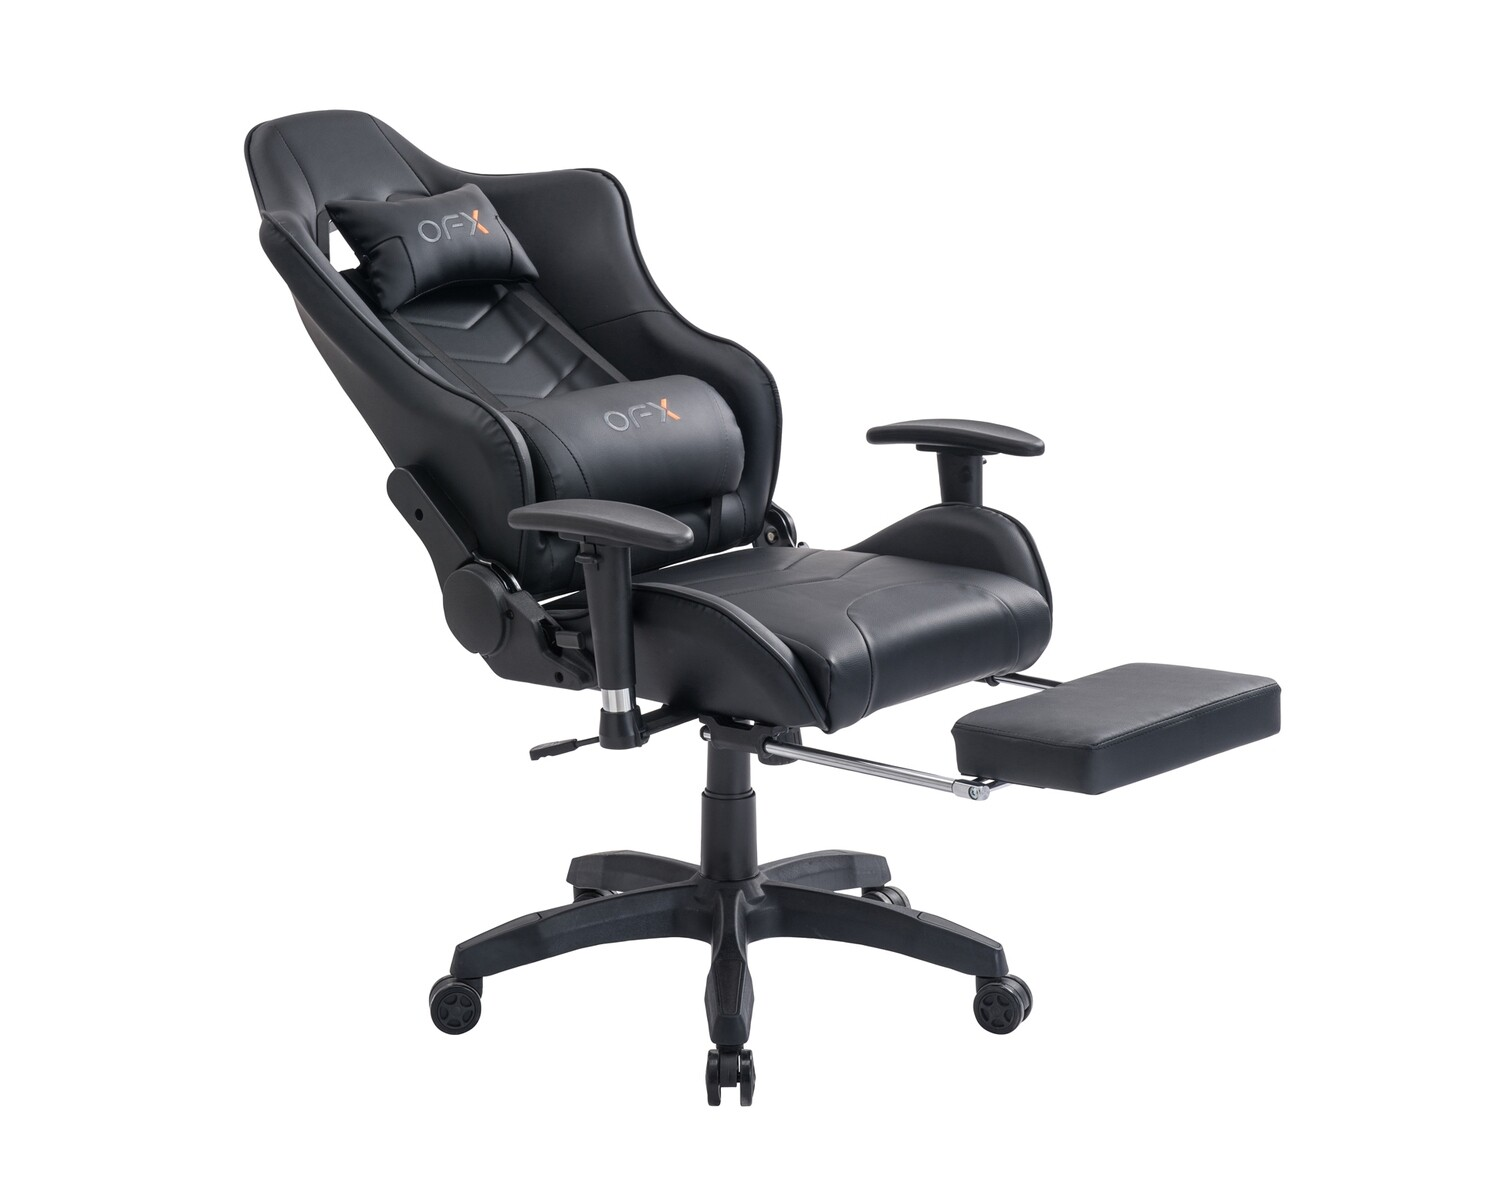 OFX Joshua Cocoon Back Gaming Chair w/ Foot Rest (Black, Black+Red, White+Pink)